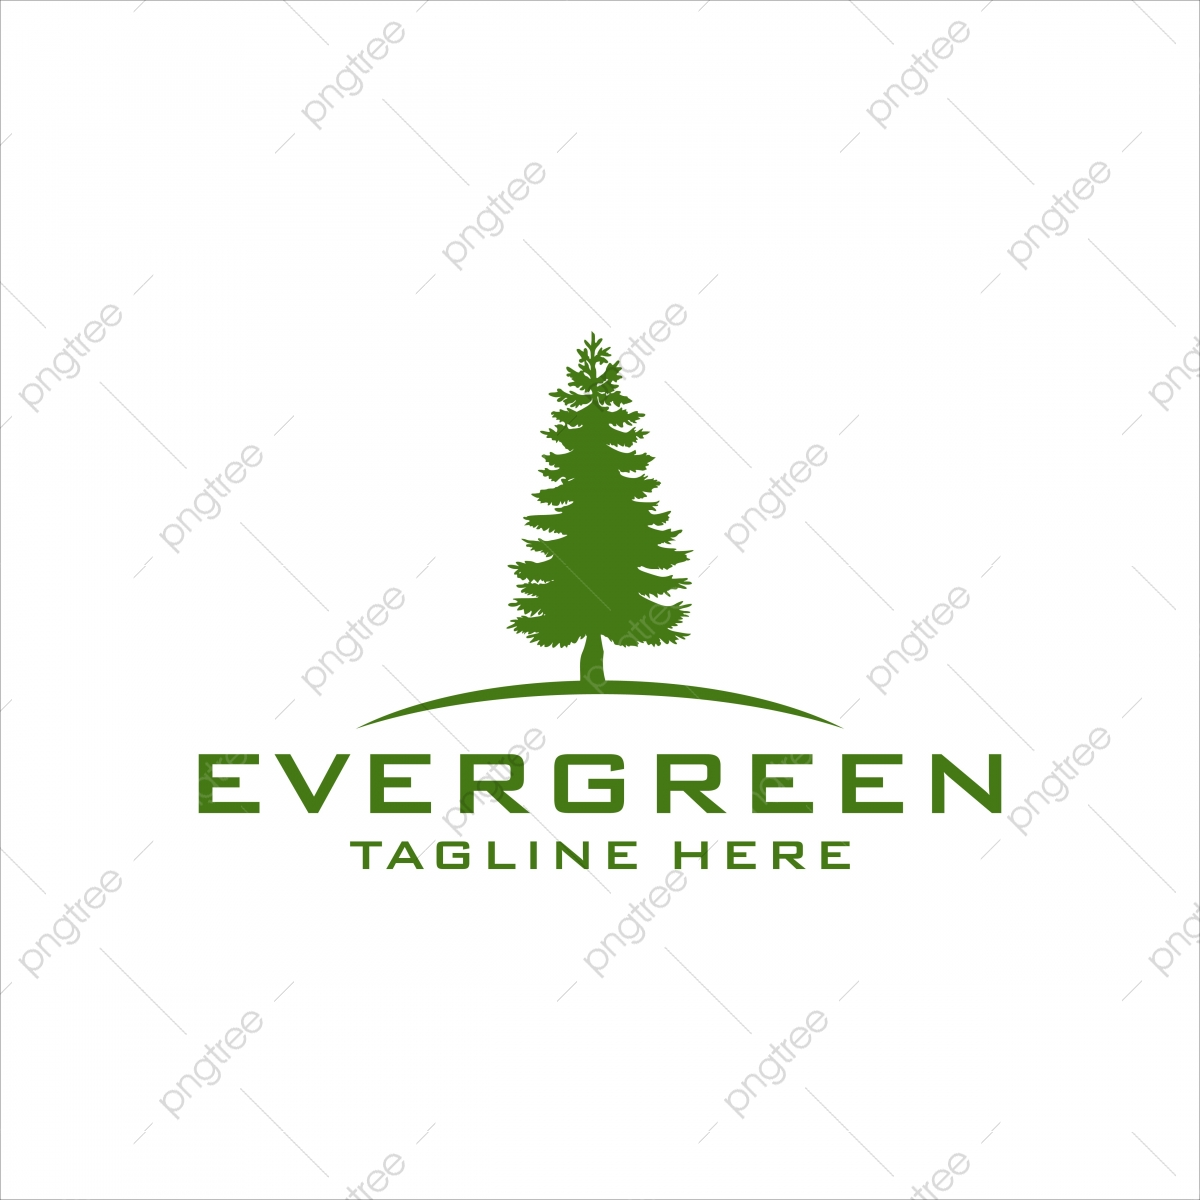 Pine Trees Logo Design Evergreen Fir Hemlock Spruce Conifer Cedar Coniferous Cypress Larch Template Download On Pngtree